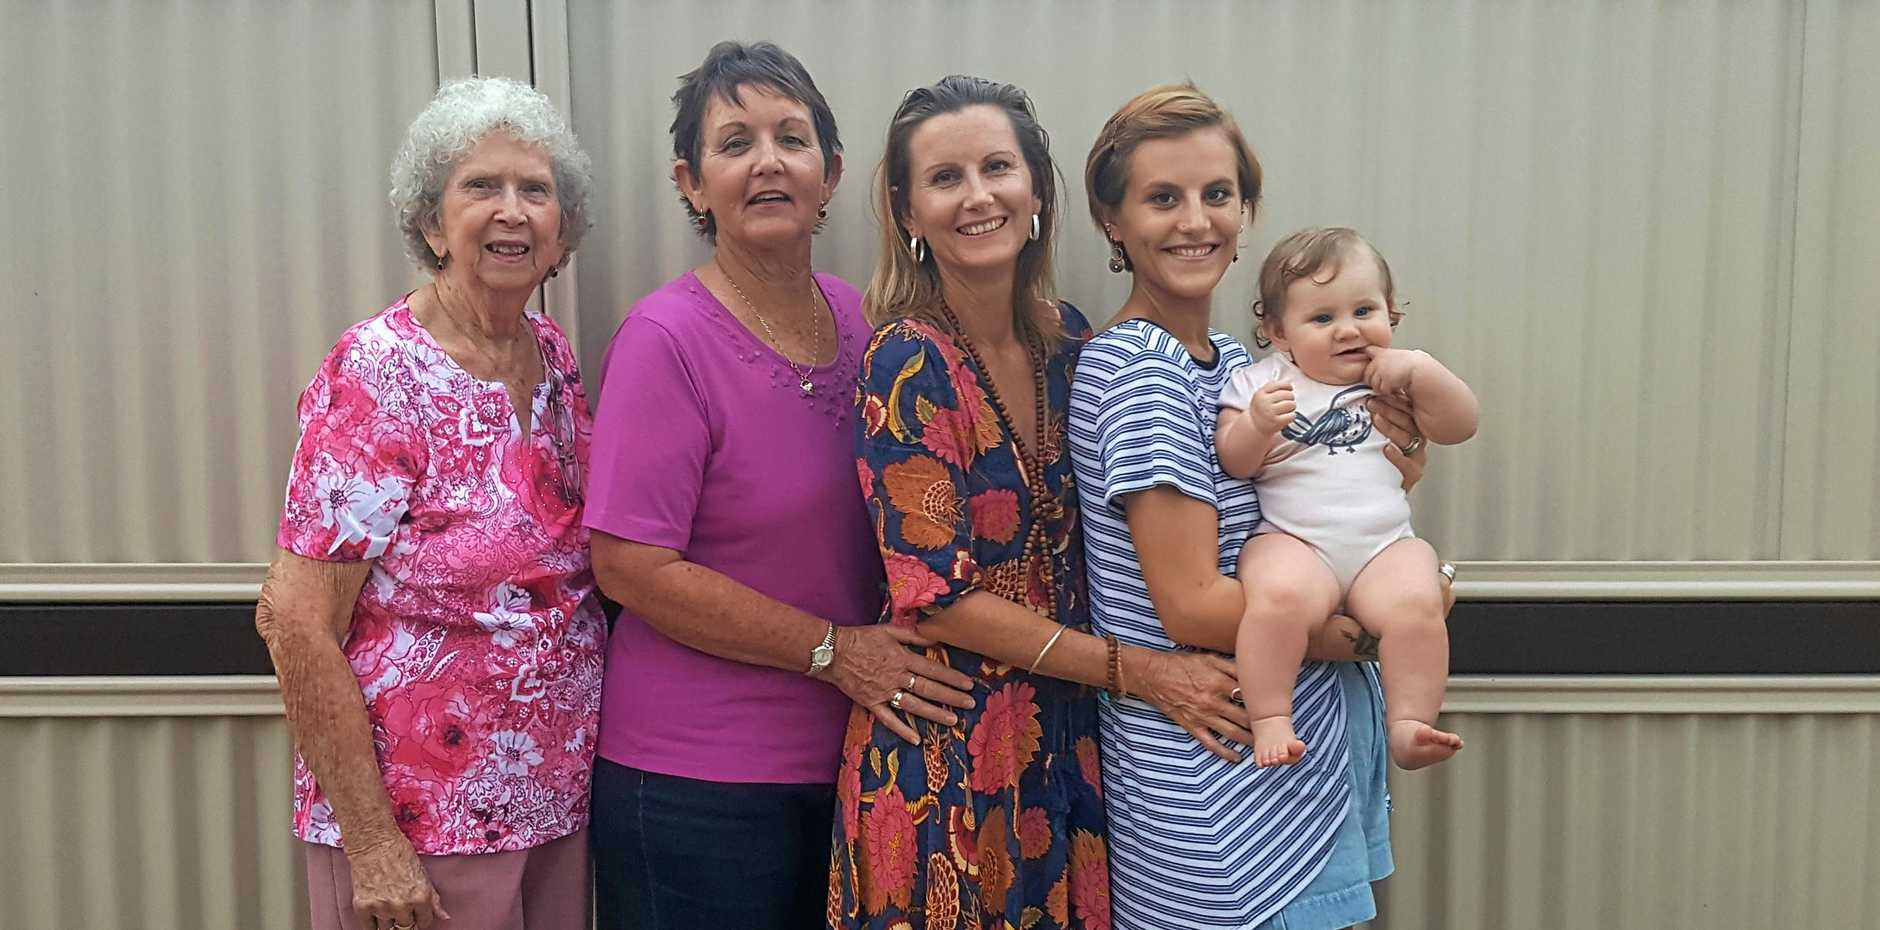 DYNASTY: Frida Roberts (eight months) with mother Alaina Roberts, 21, grandmother Katrina Lanzon, 44, great-grandmother Pamela Carter, 64, and great-great grandmother Mona Lees, 86.